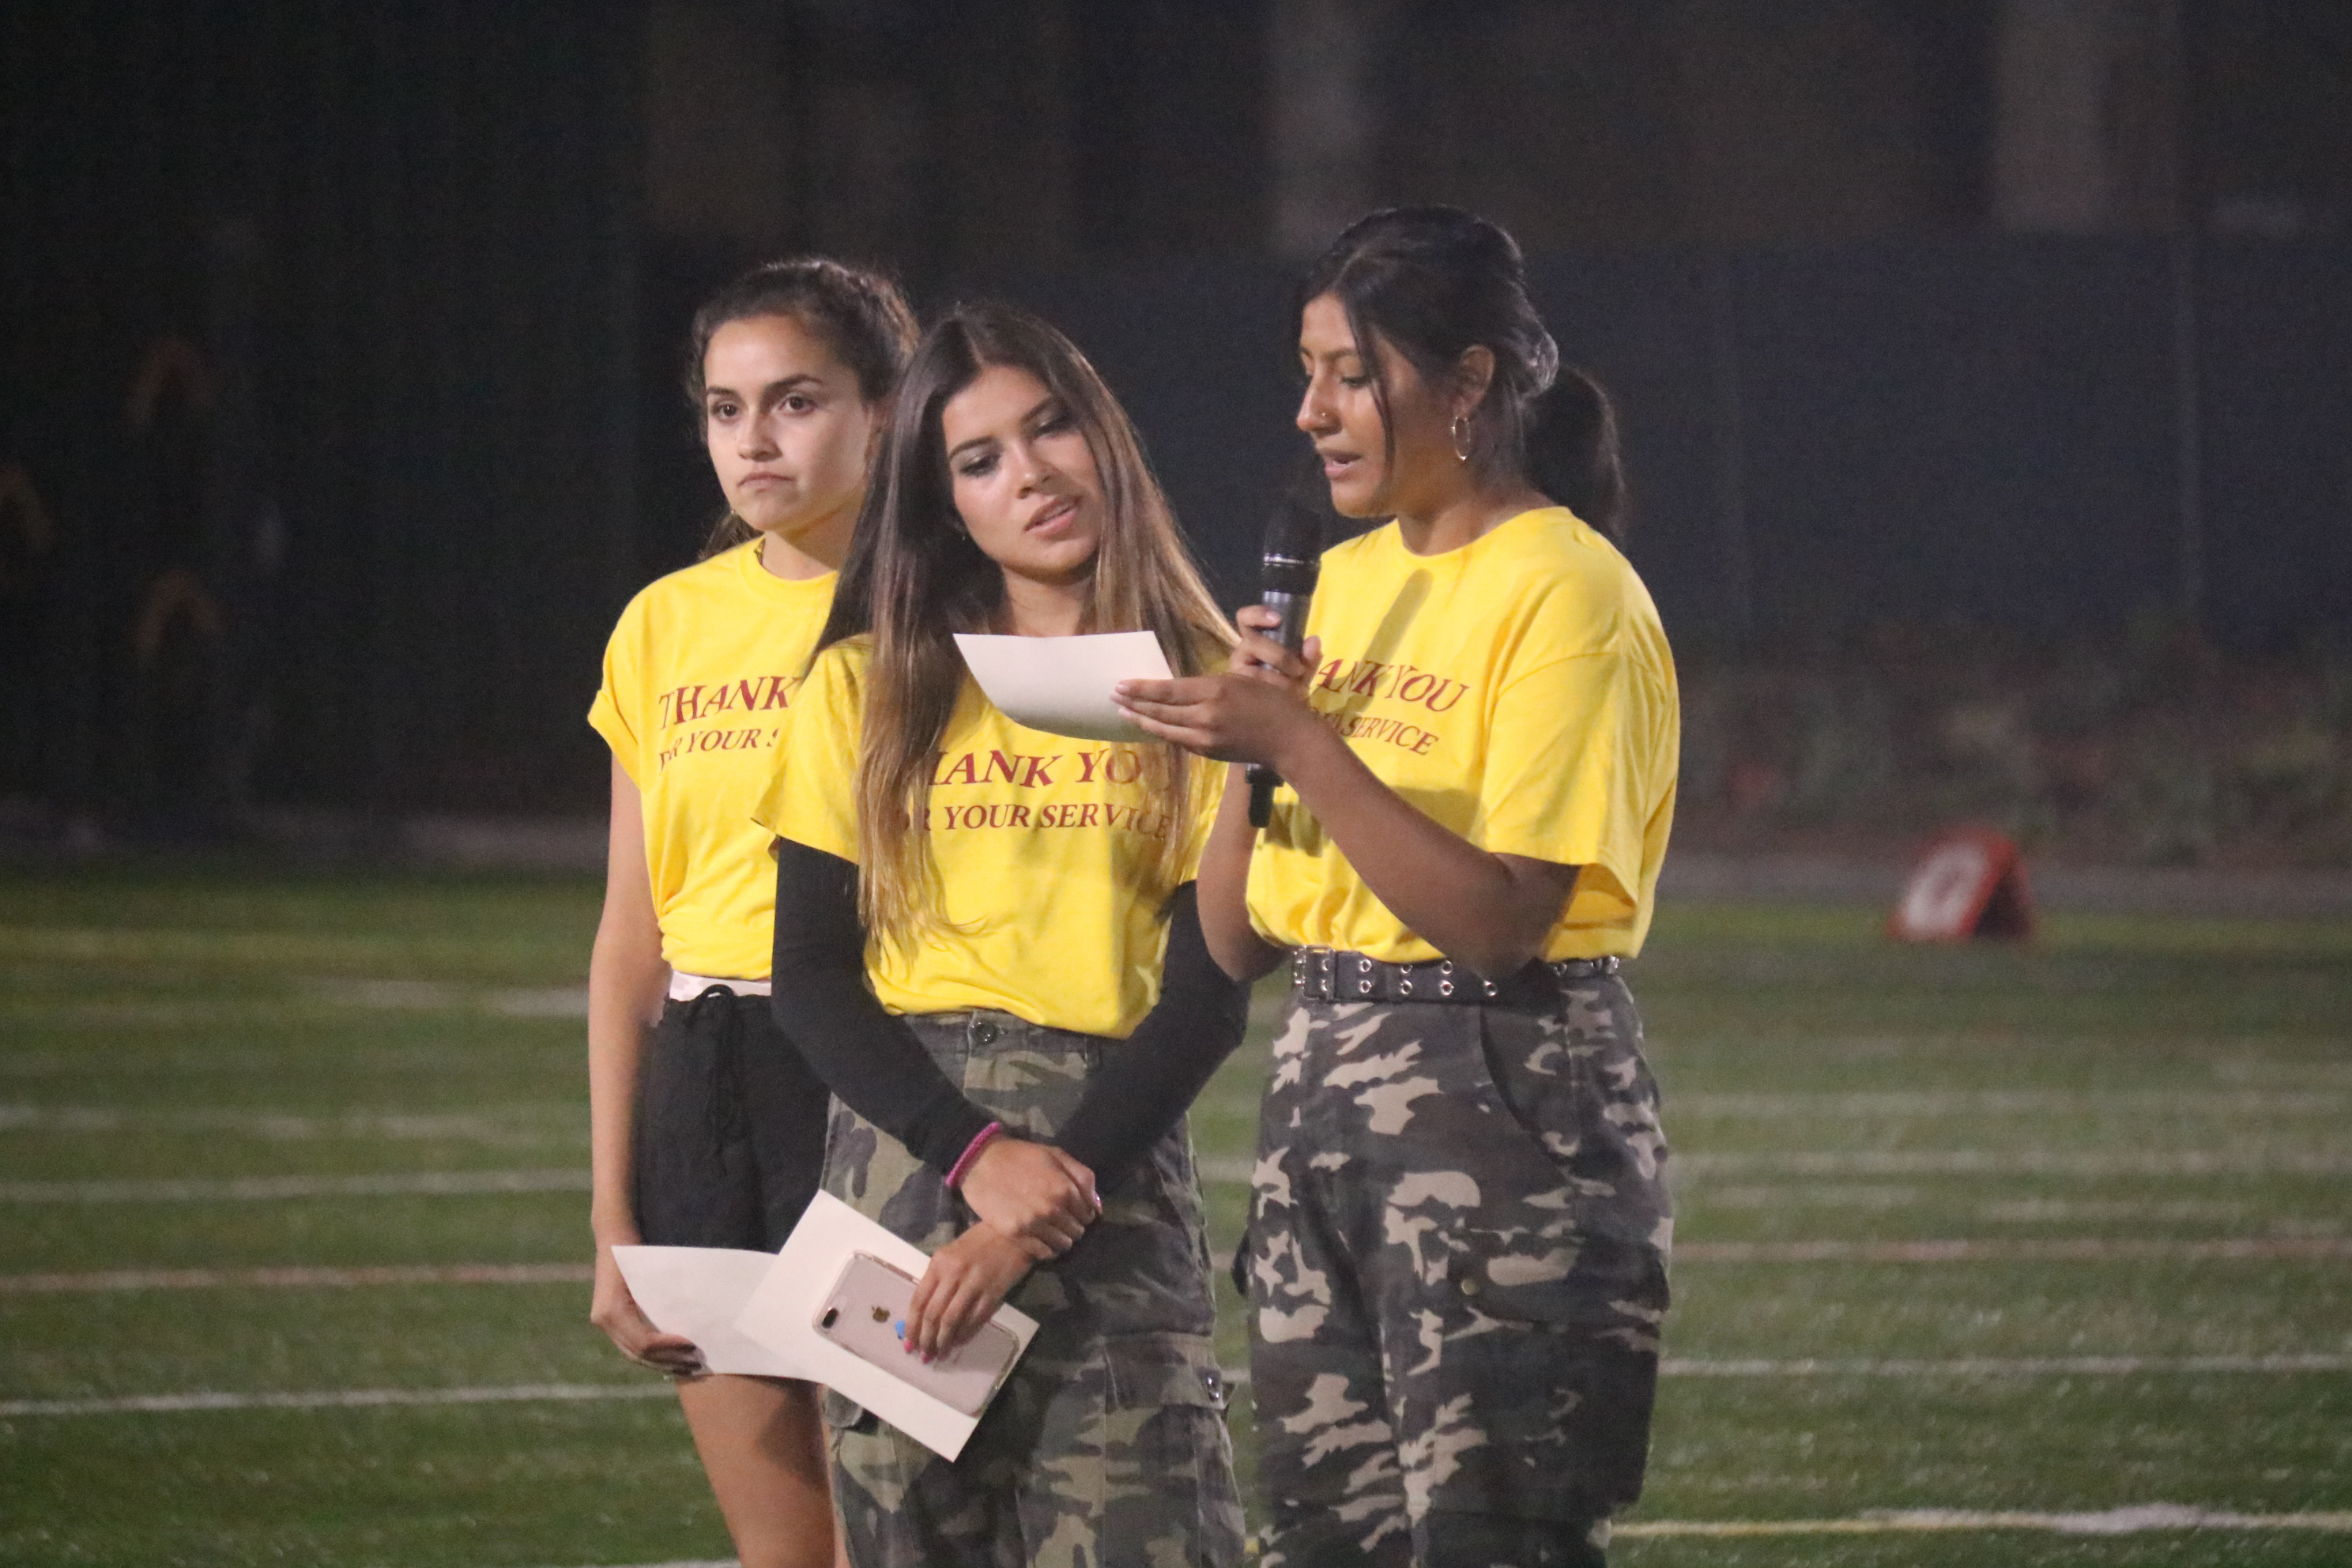 St. Margaret's students participate in a Military Appreciation Night event after the first quarter. Photo: Zach Cavanagh